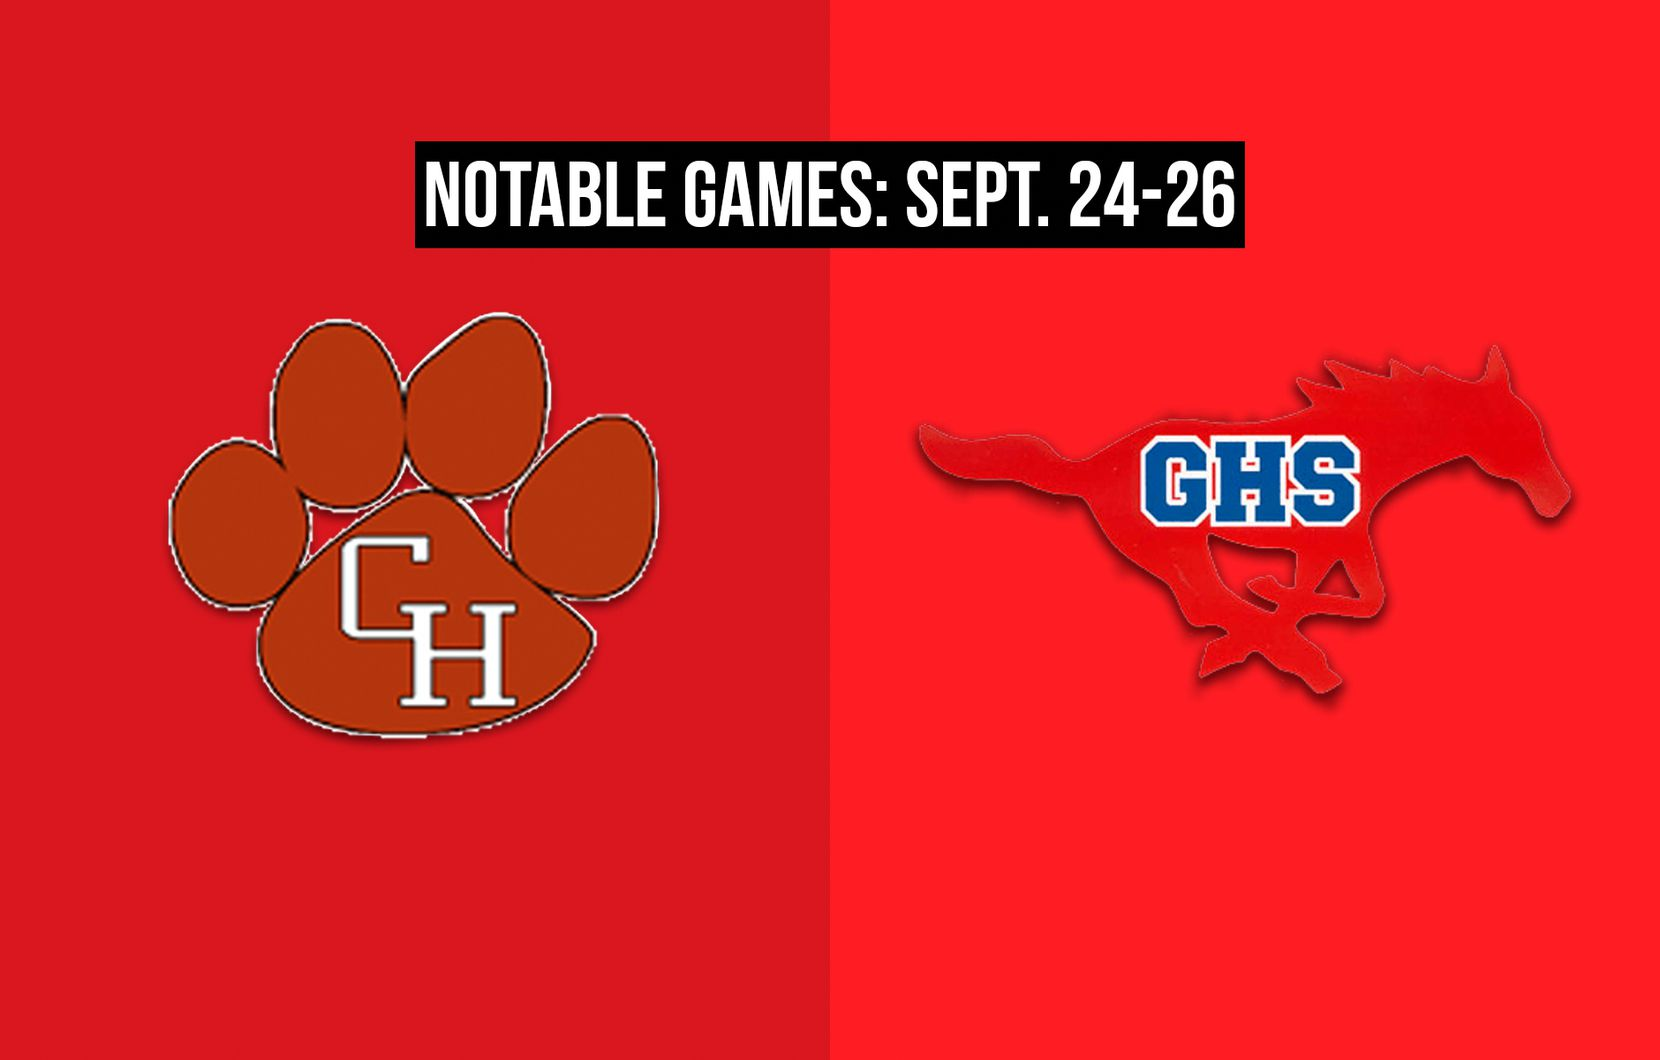 Notable games for the week of Sept. 24-26 of the 2020 season: Colleyville Heritage vs. Grapevine.